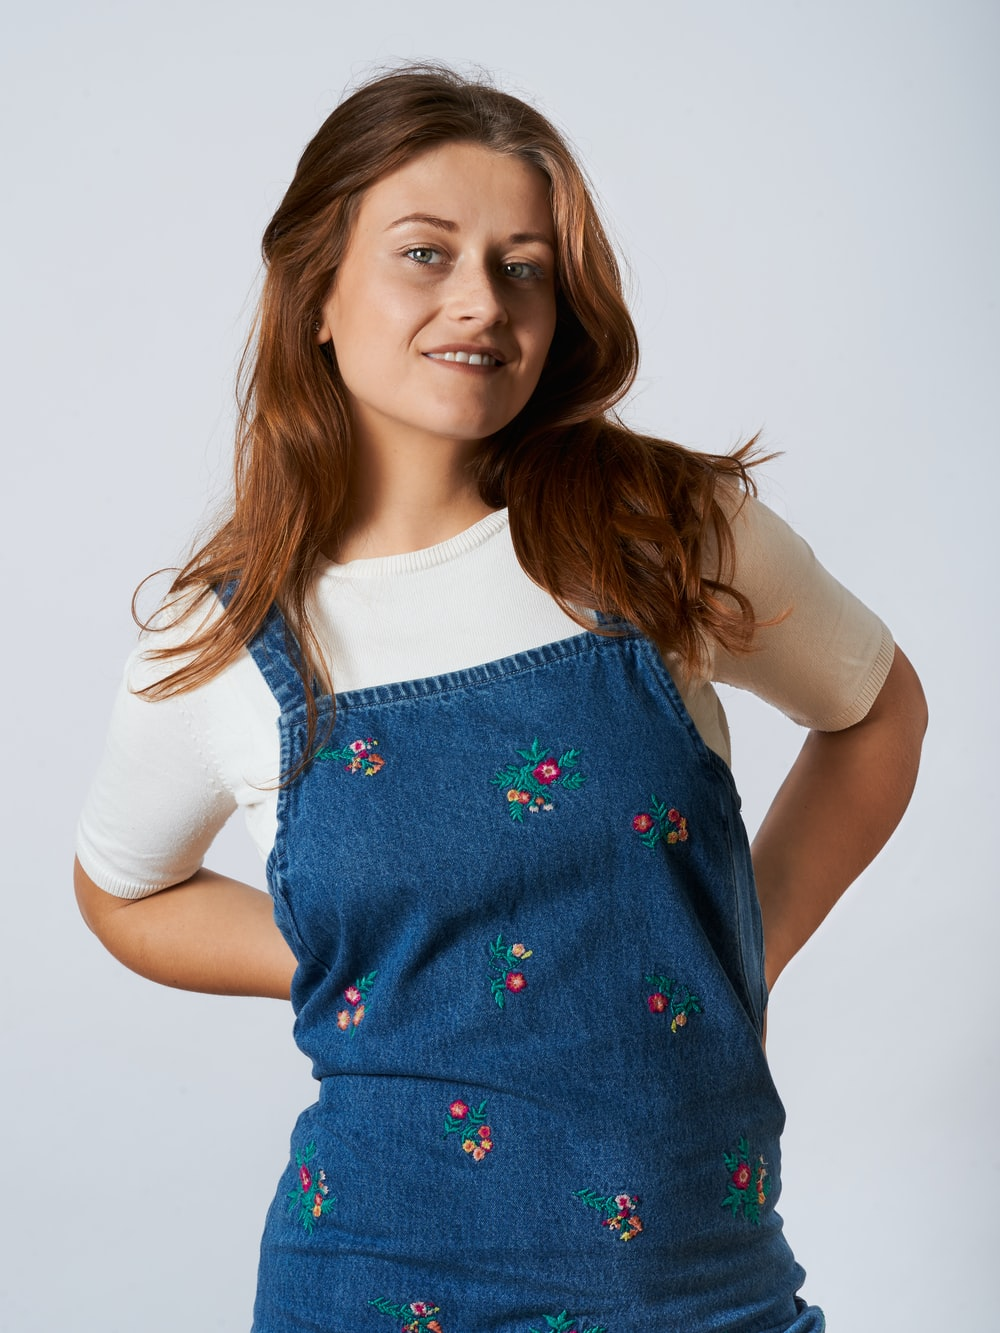 girl in white long sleeve shirt and blue denim dungaree